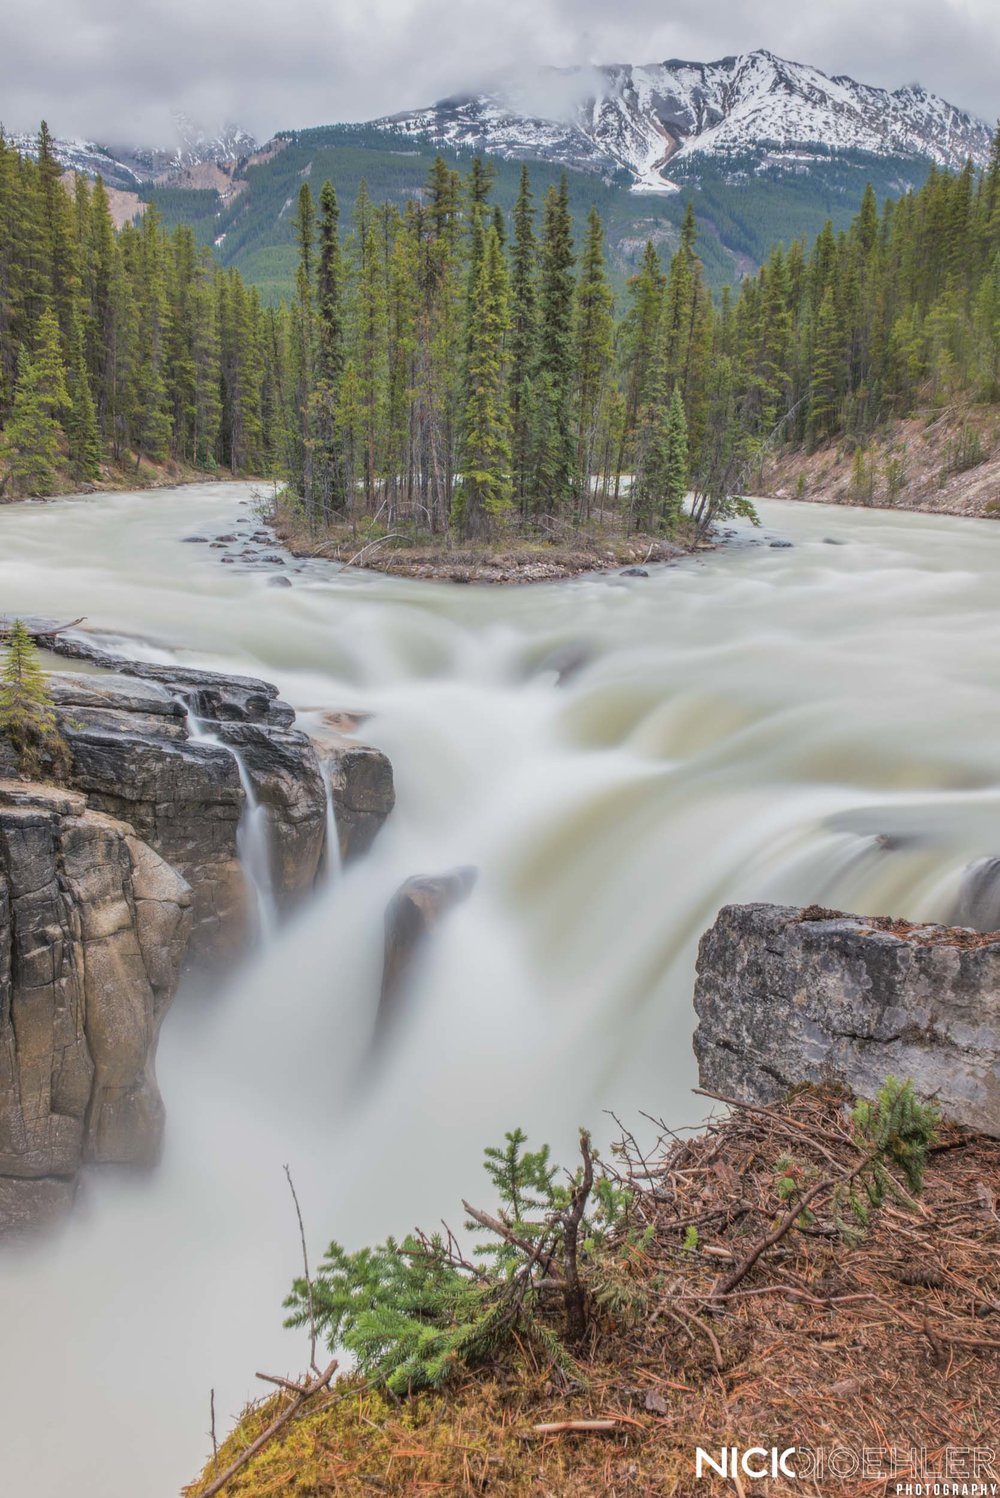 Jasper National Park: A raging waterfall being fed by a beautifully shaped river.